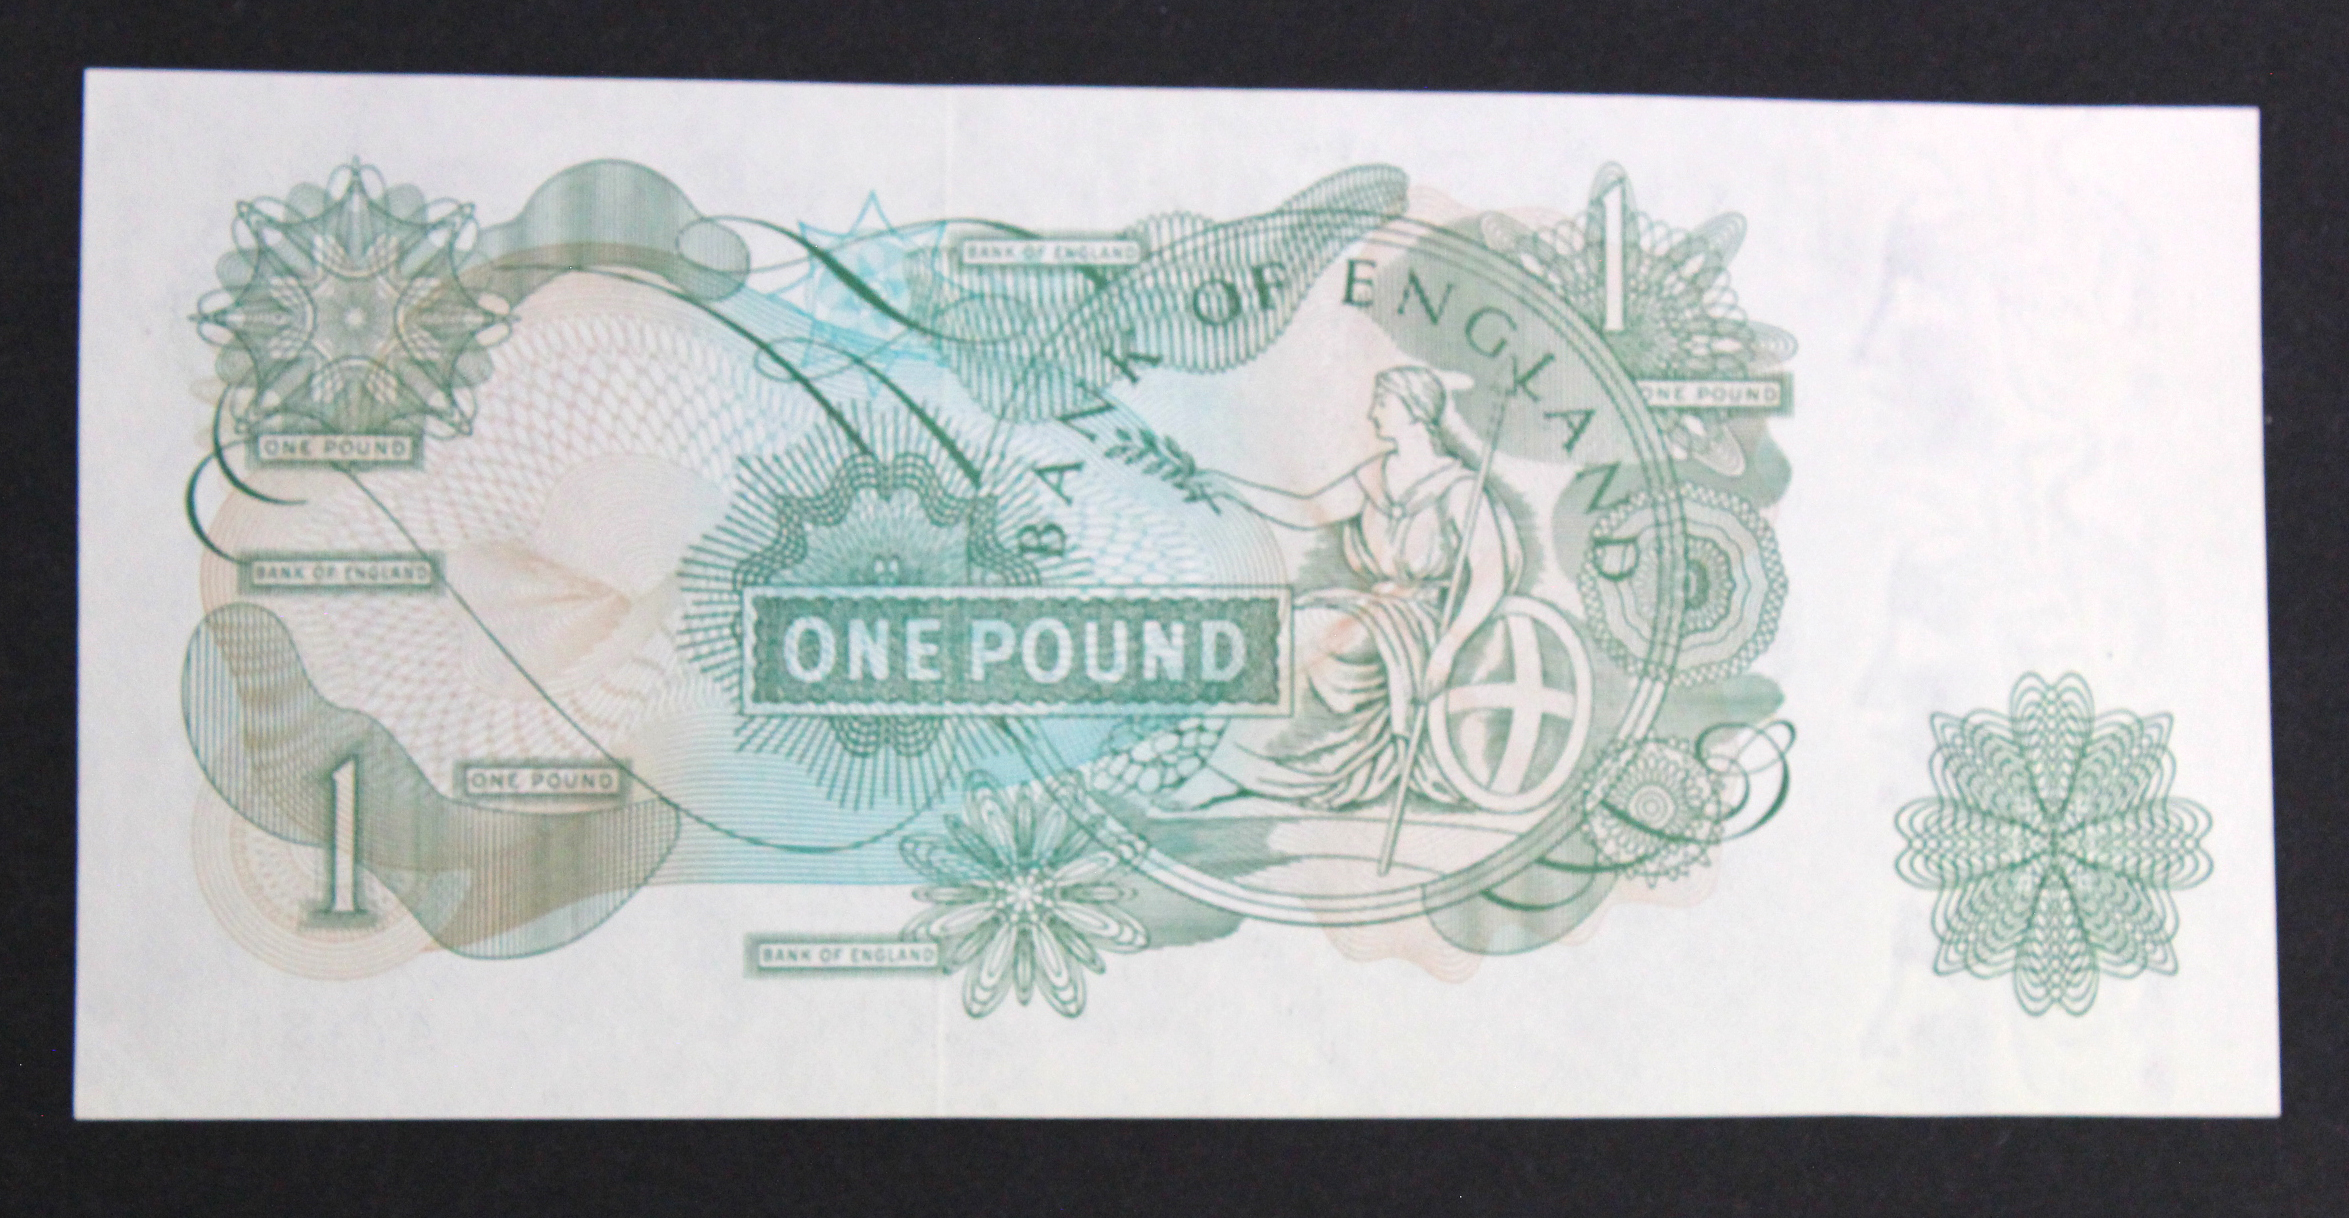 ERROR Page 1 Pound issued 1970, print flaw part of Queens portrait missing/smudged, serial HS74 - Image 2 of 2